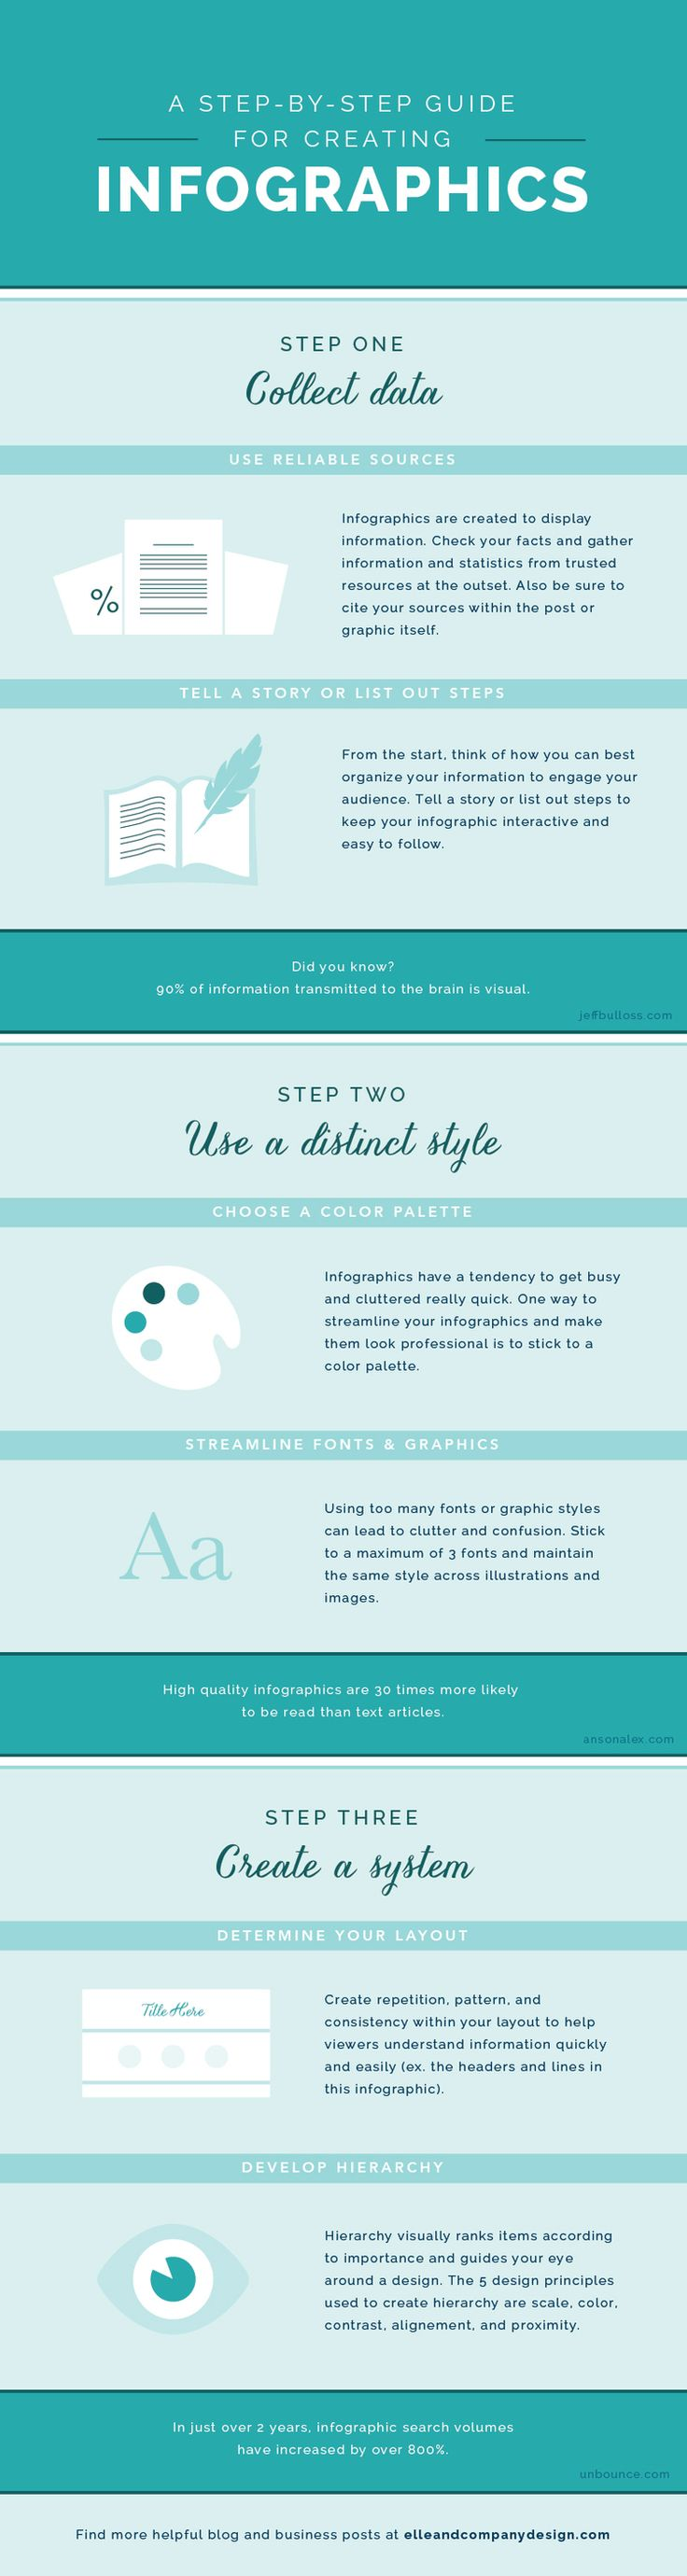 A Step-By-Step Guide for Creating Infographics This tutorial shows how to create infographics for your blog, which will add value to all of your posts and attract more readers.